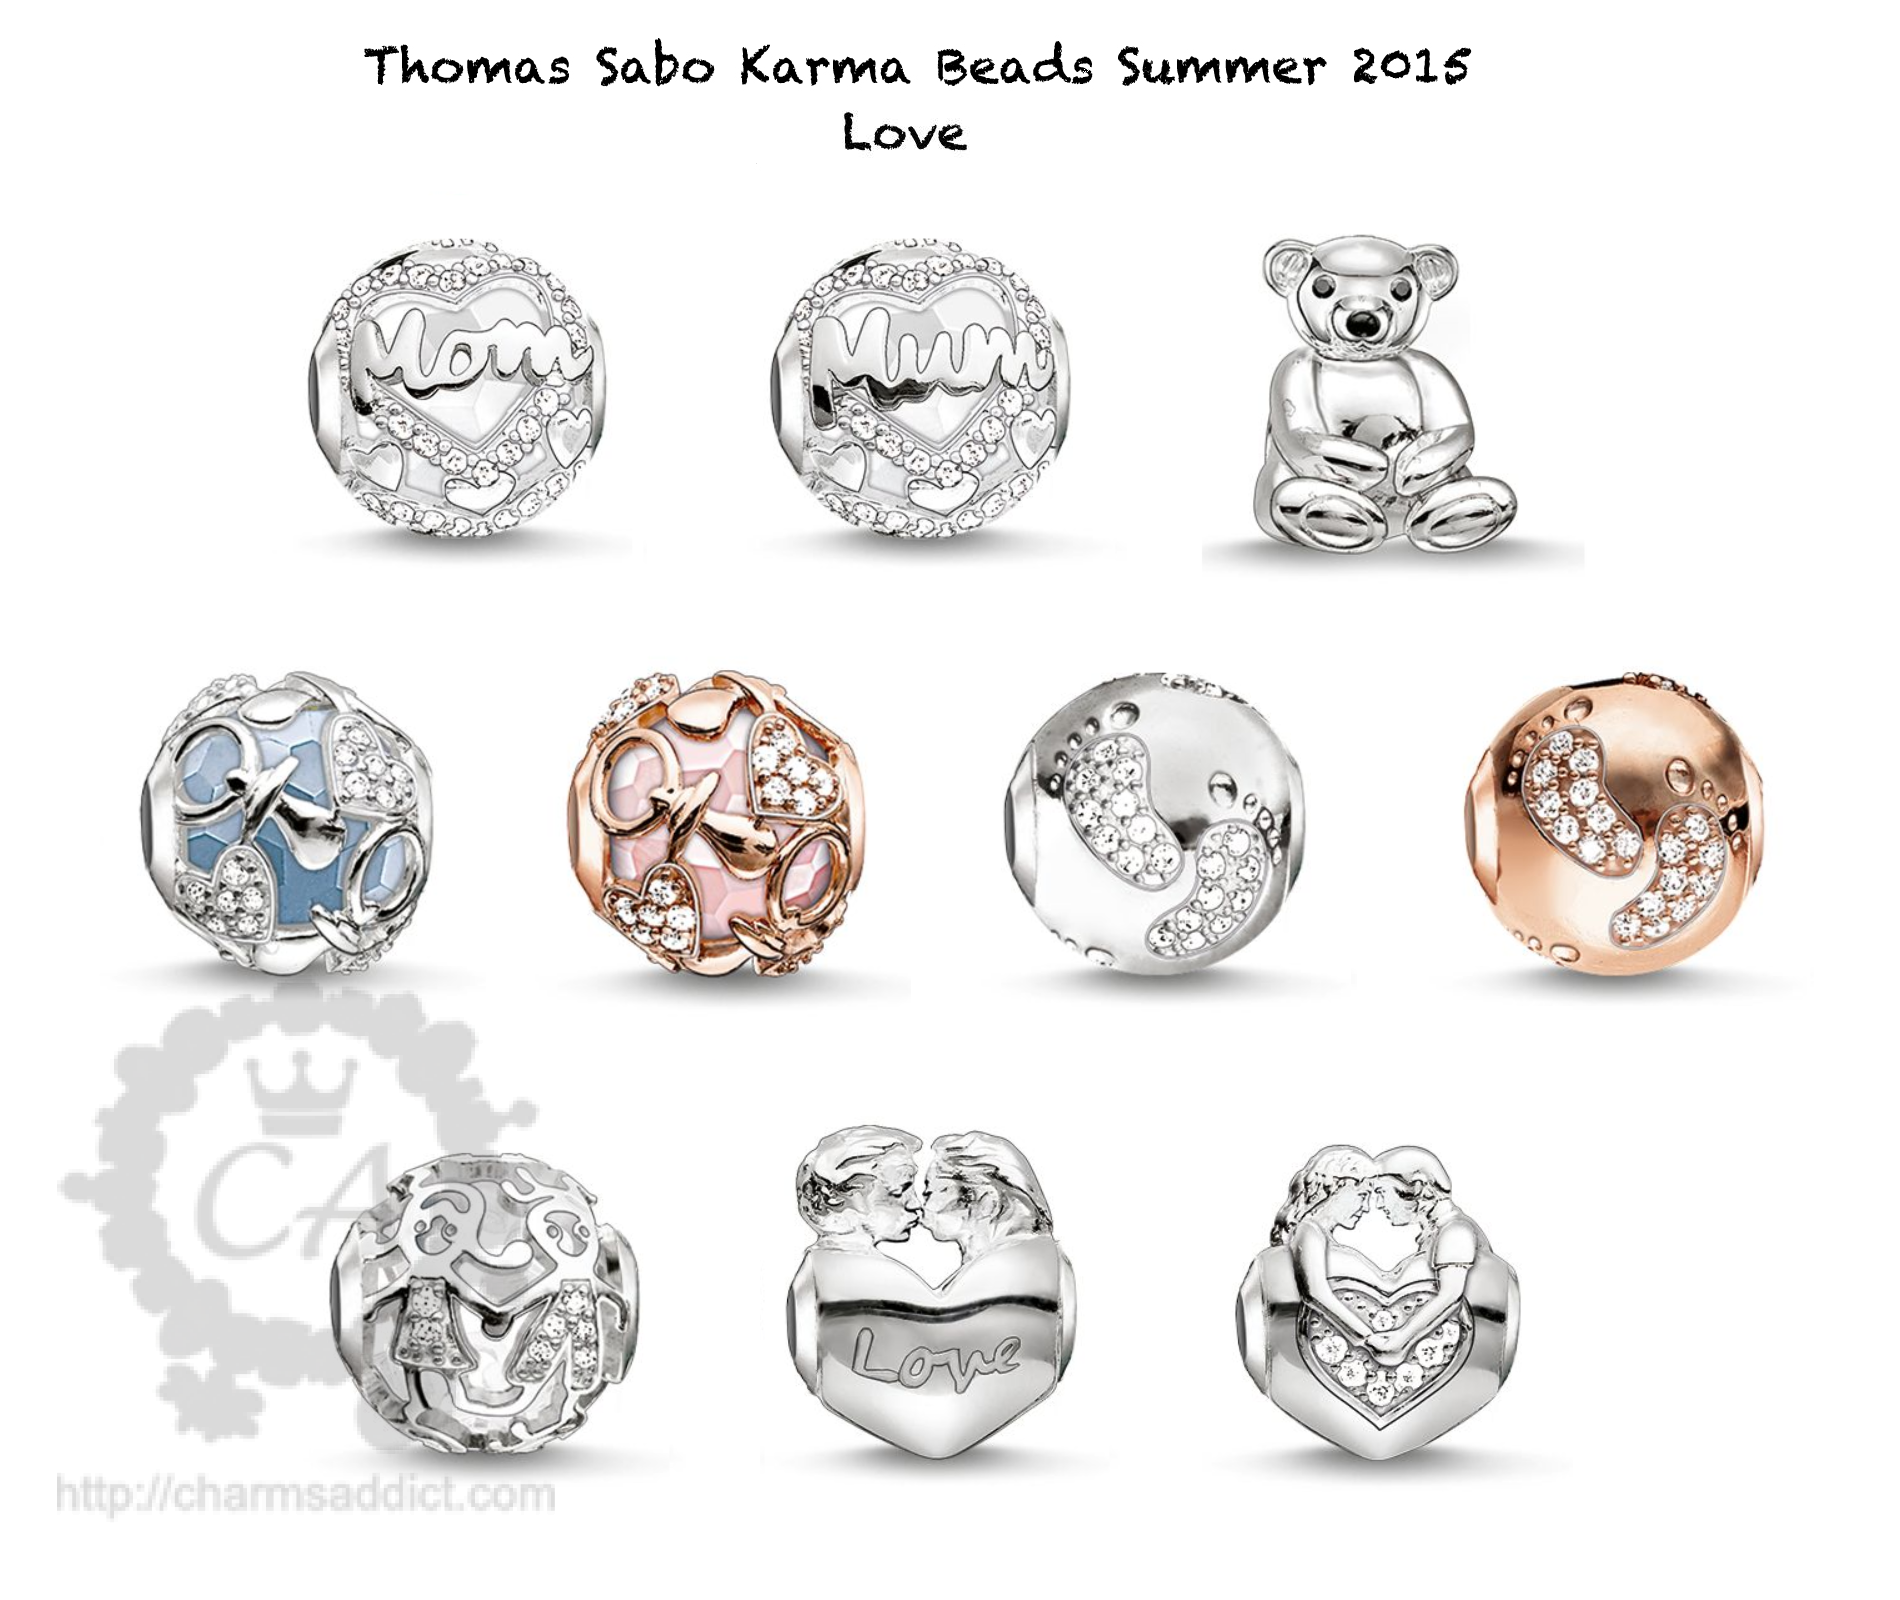 temperament shoes save up to 80% authentic quality Thomas Sabo Summer 2015 Preview | Charms Addict